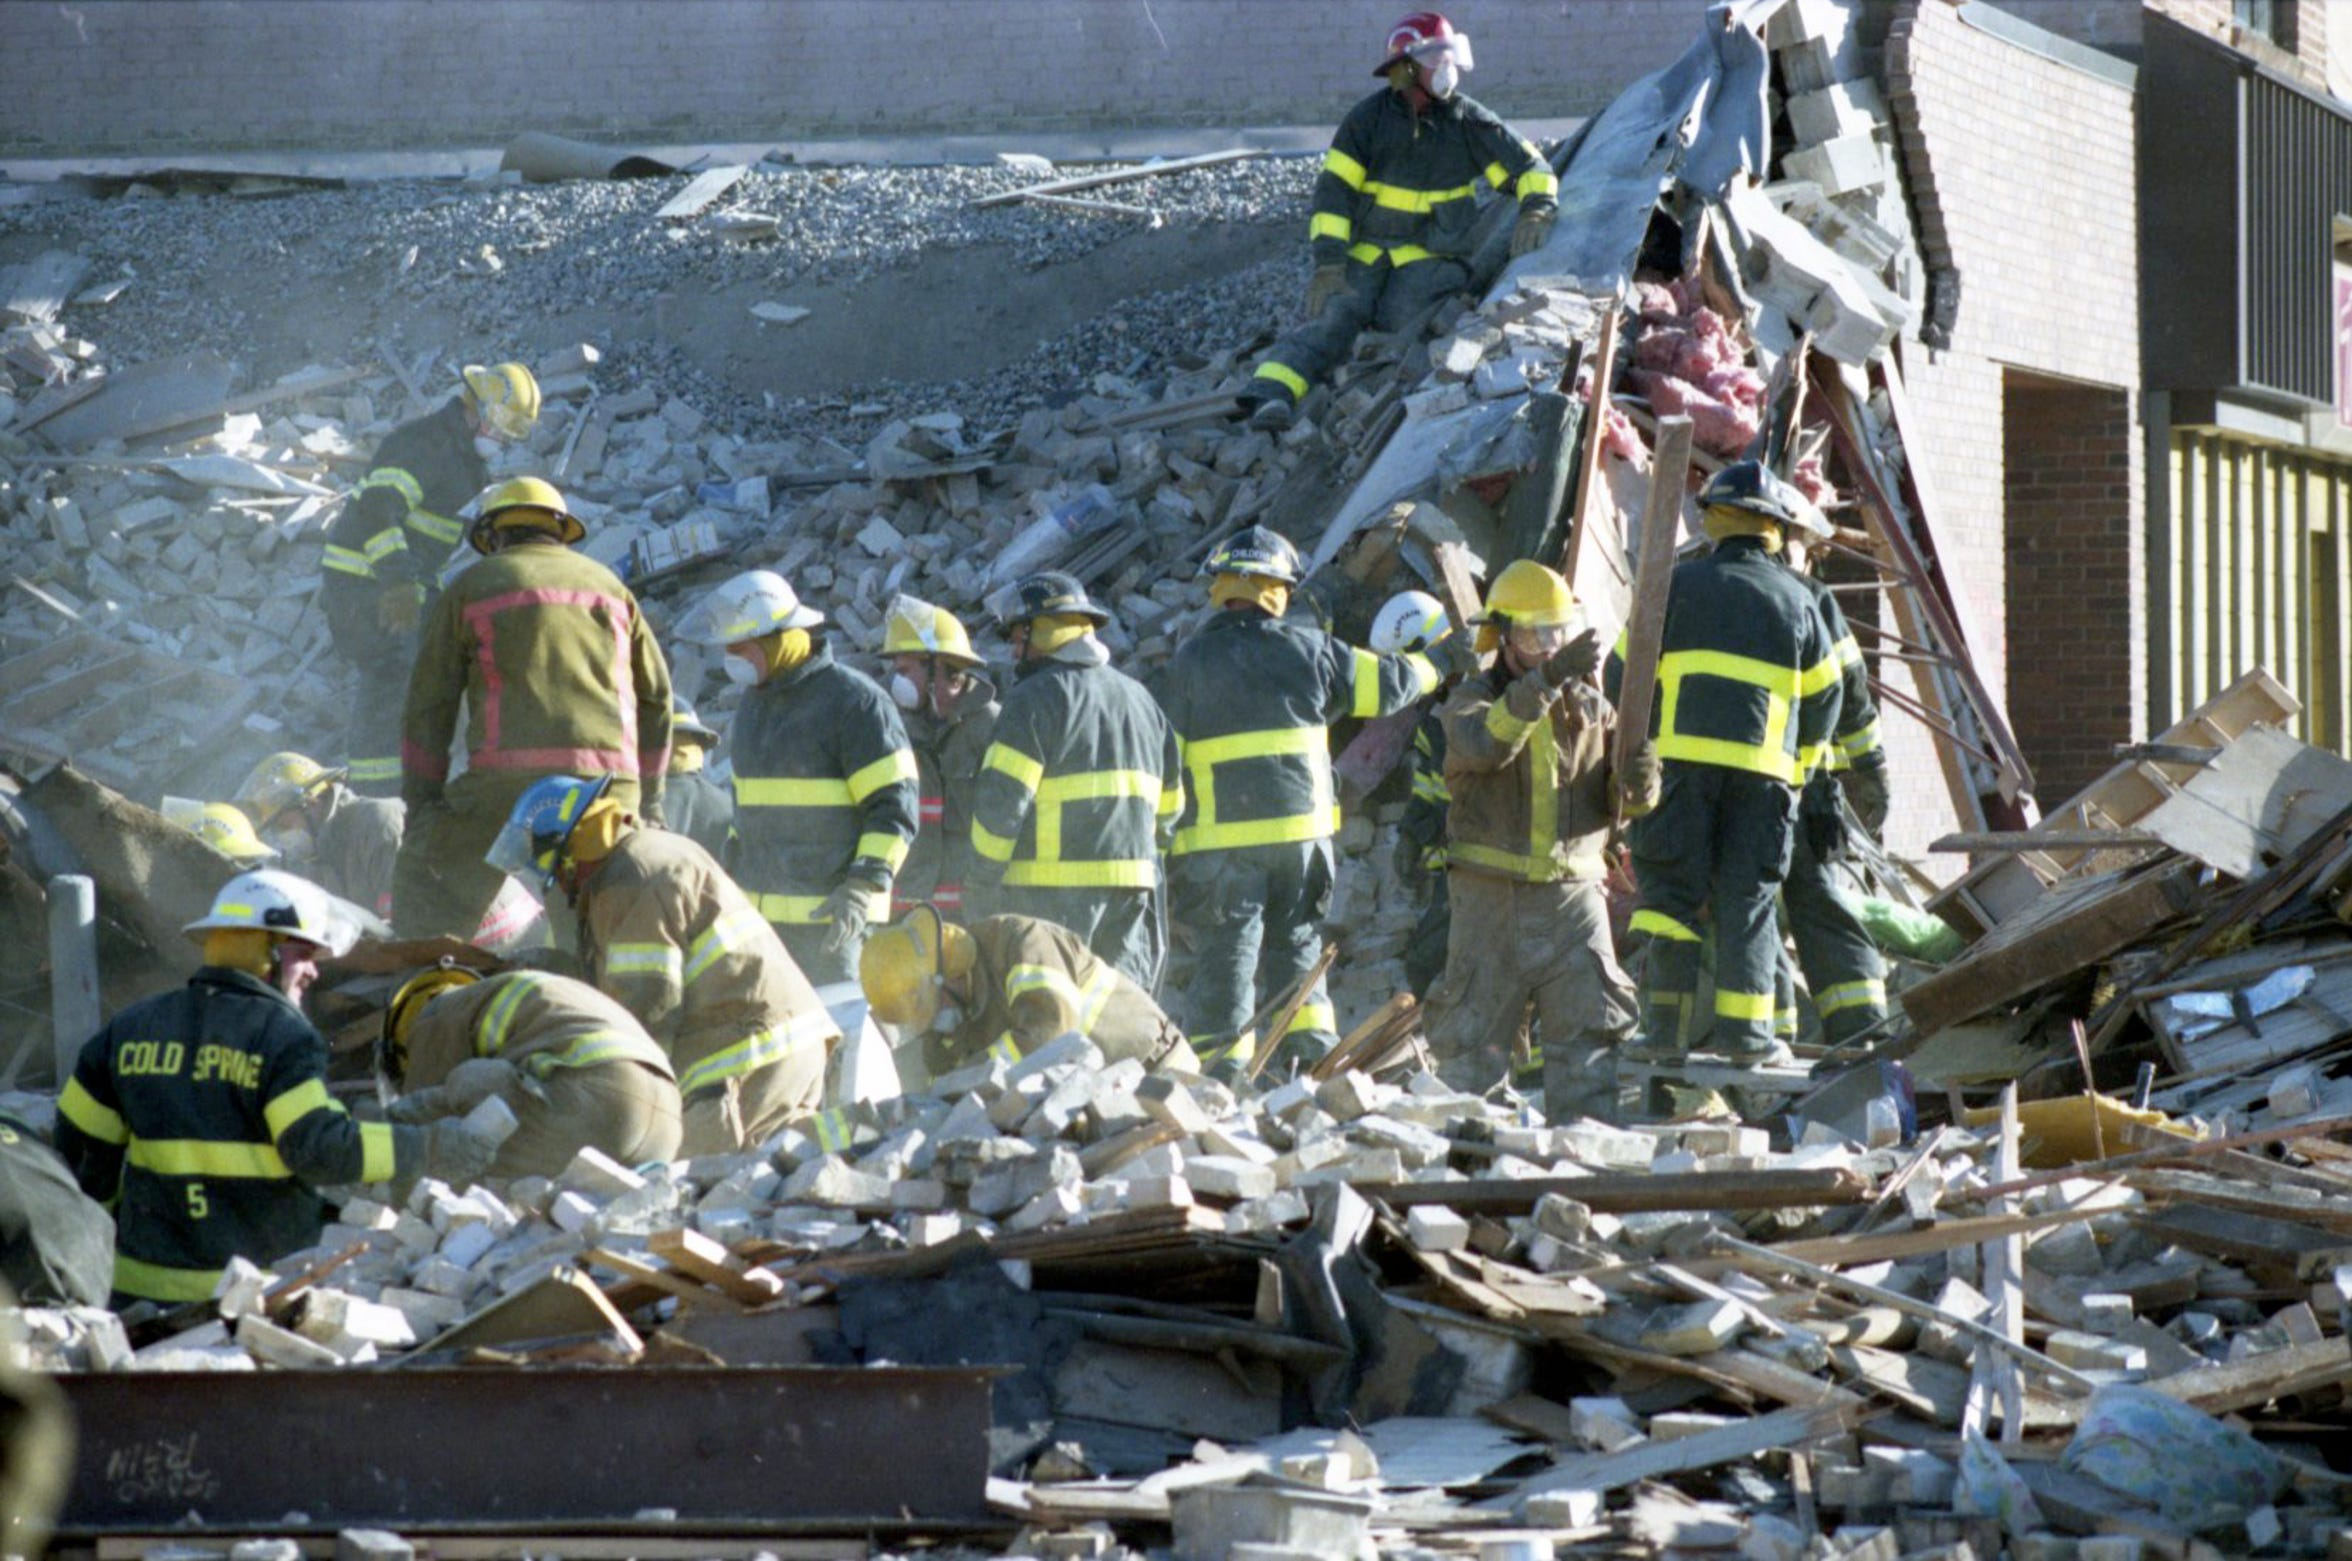 Firefighters from five surrounding departments comb through the rubble of Bellantti's Pizza & Deli building Dec. 11 after a fatal gas main explosion leveled the building and heavily damaged adjacent structures.